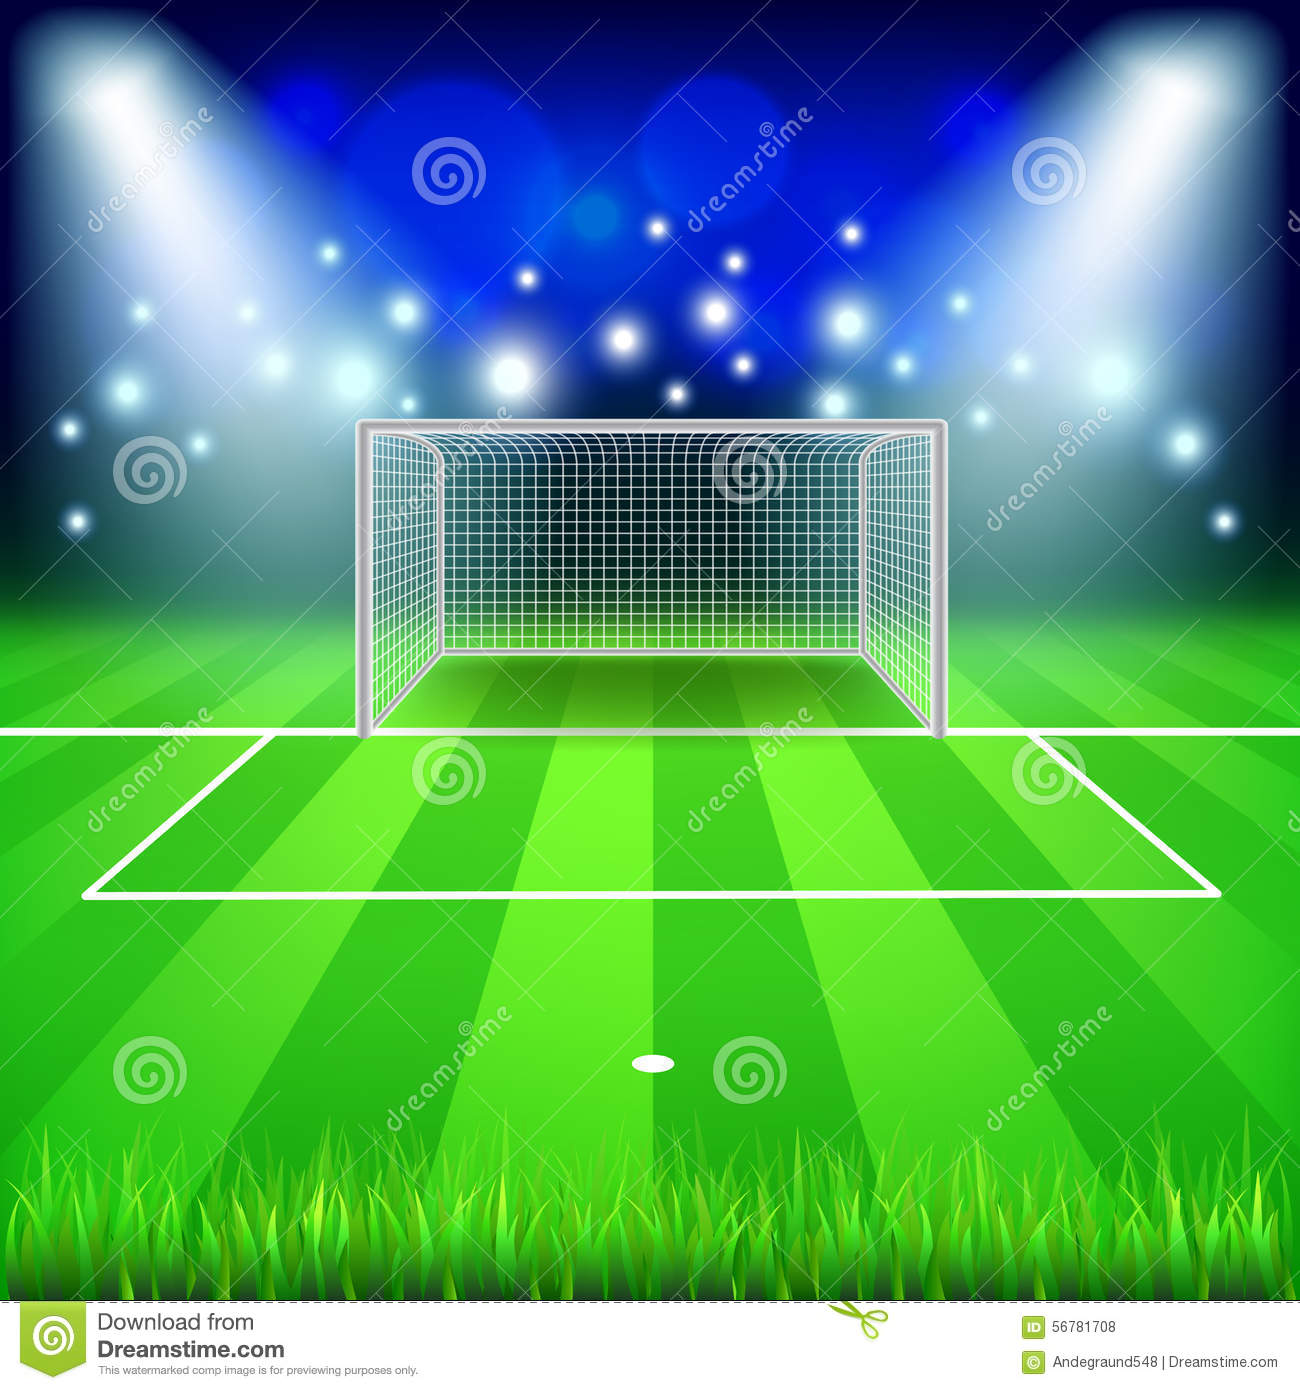 grass soccer field with goal. Soccer Goal On Field Vector Background Stock - Illustration Of Line, Leisure: 56781708 Grass With